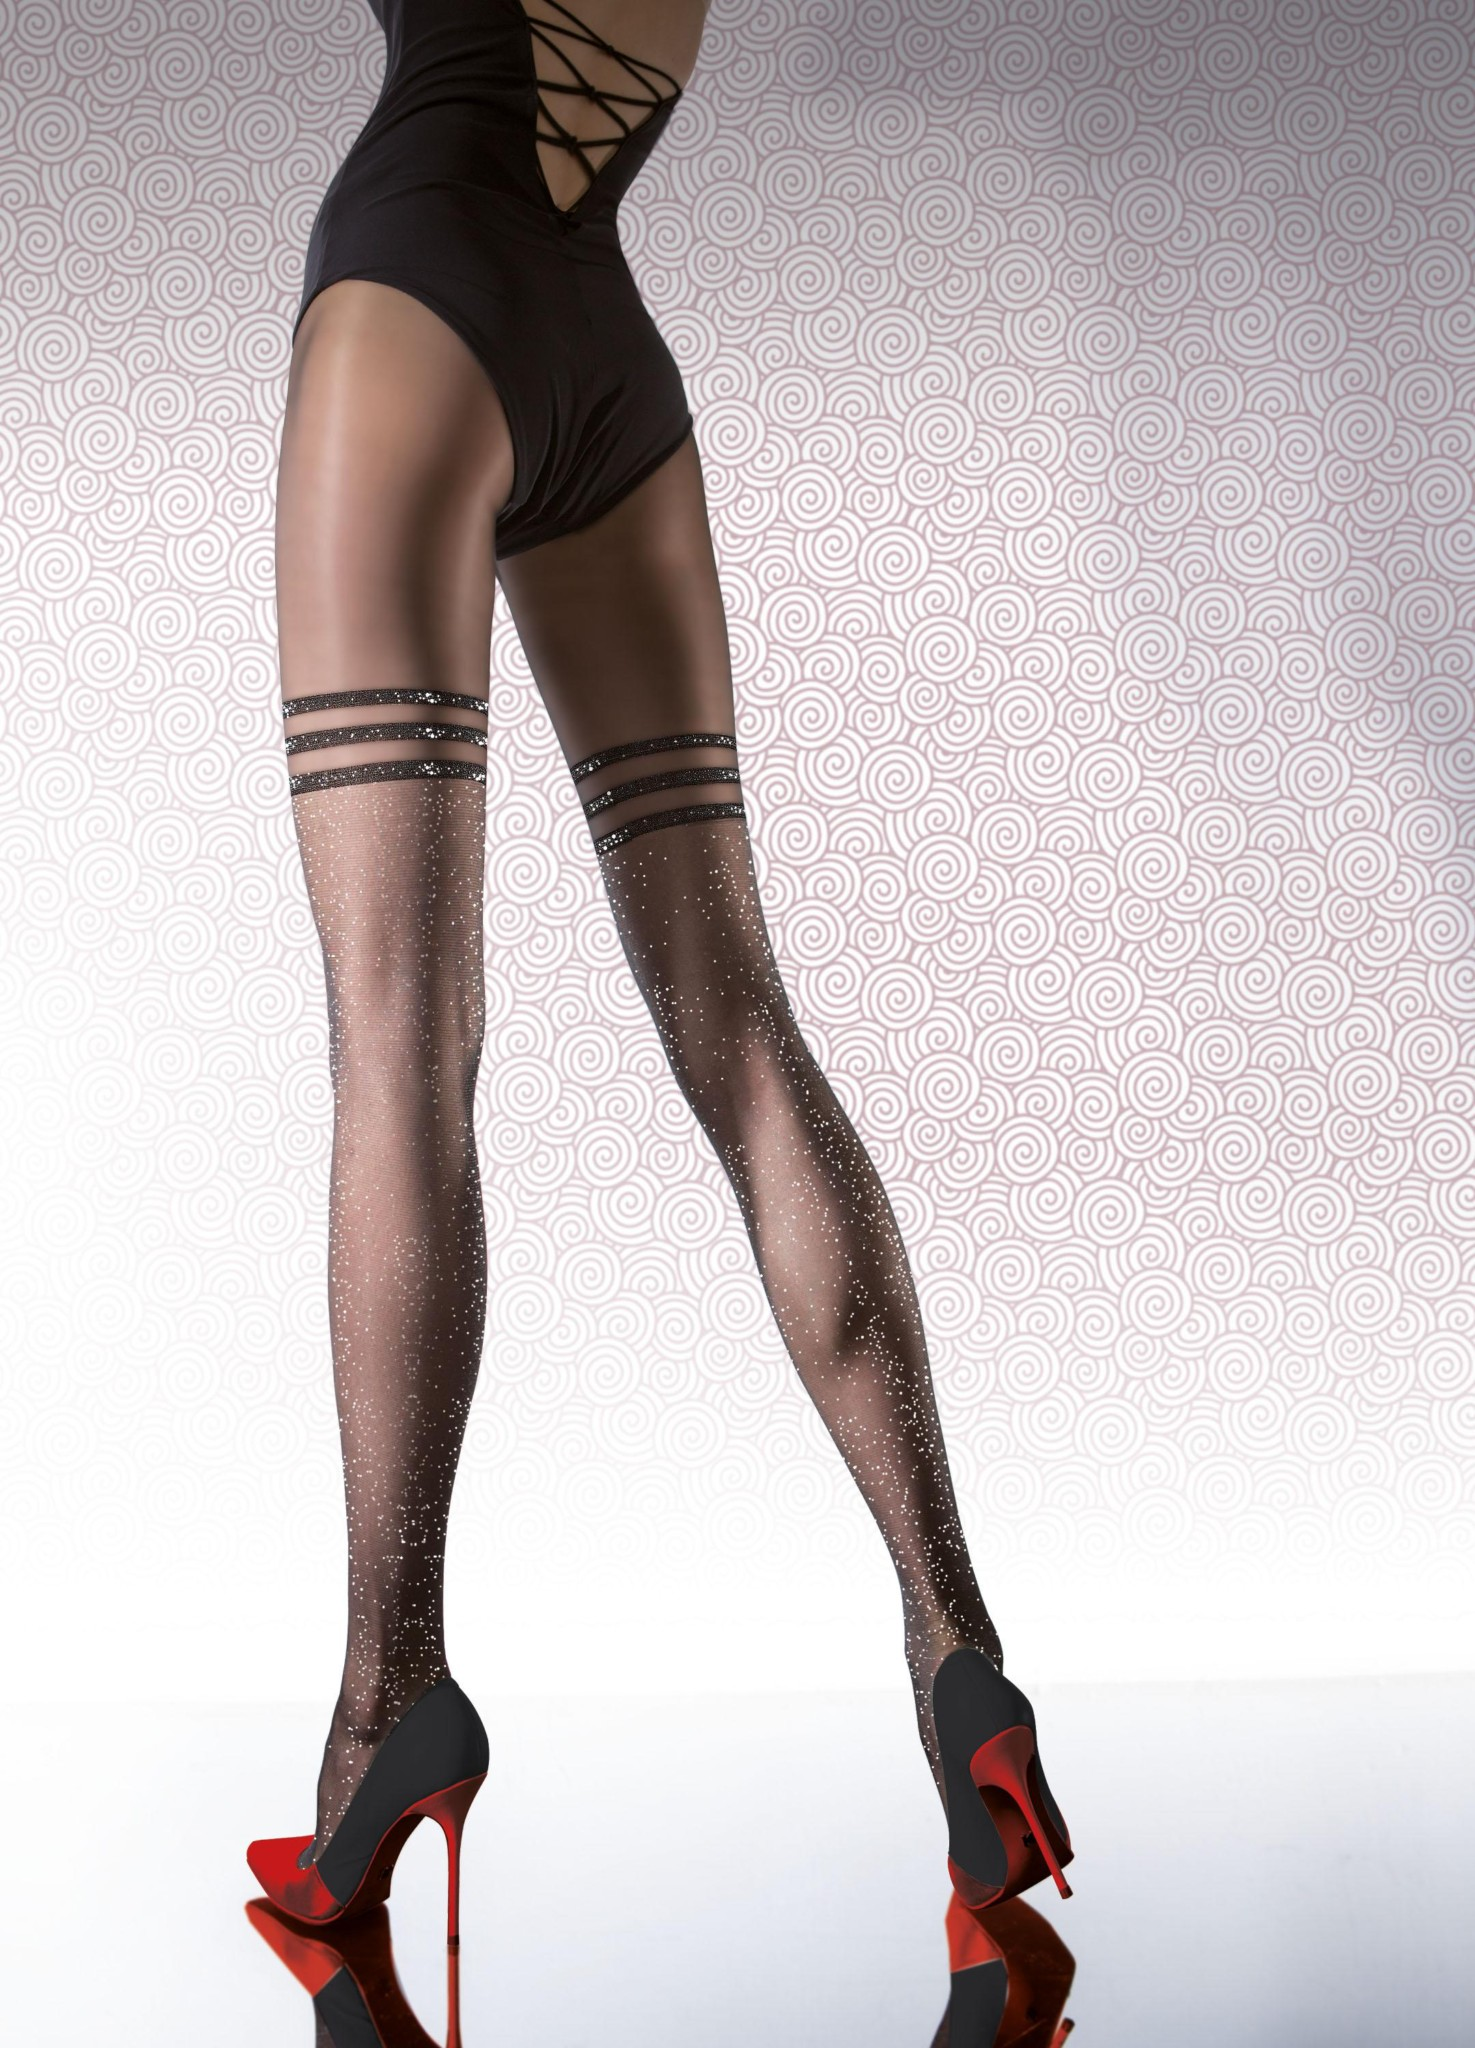 d3cbf6cec2a Fantasy Stockings Blog   Store – » For the Love of Hosiery ...